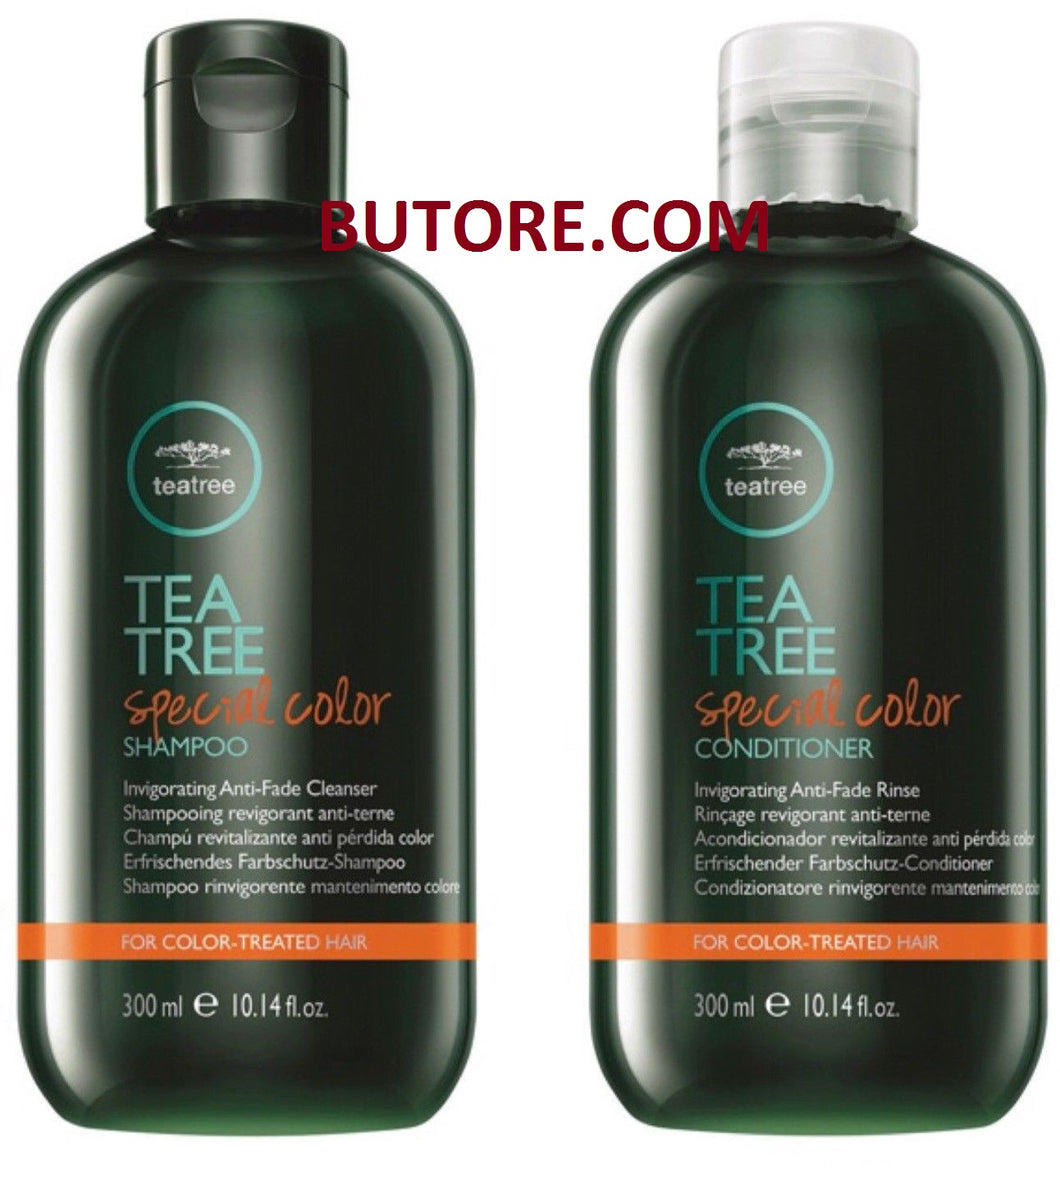 PAUL MITCHELL Tea Tree Special Color Shampoo and Conditioner Set